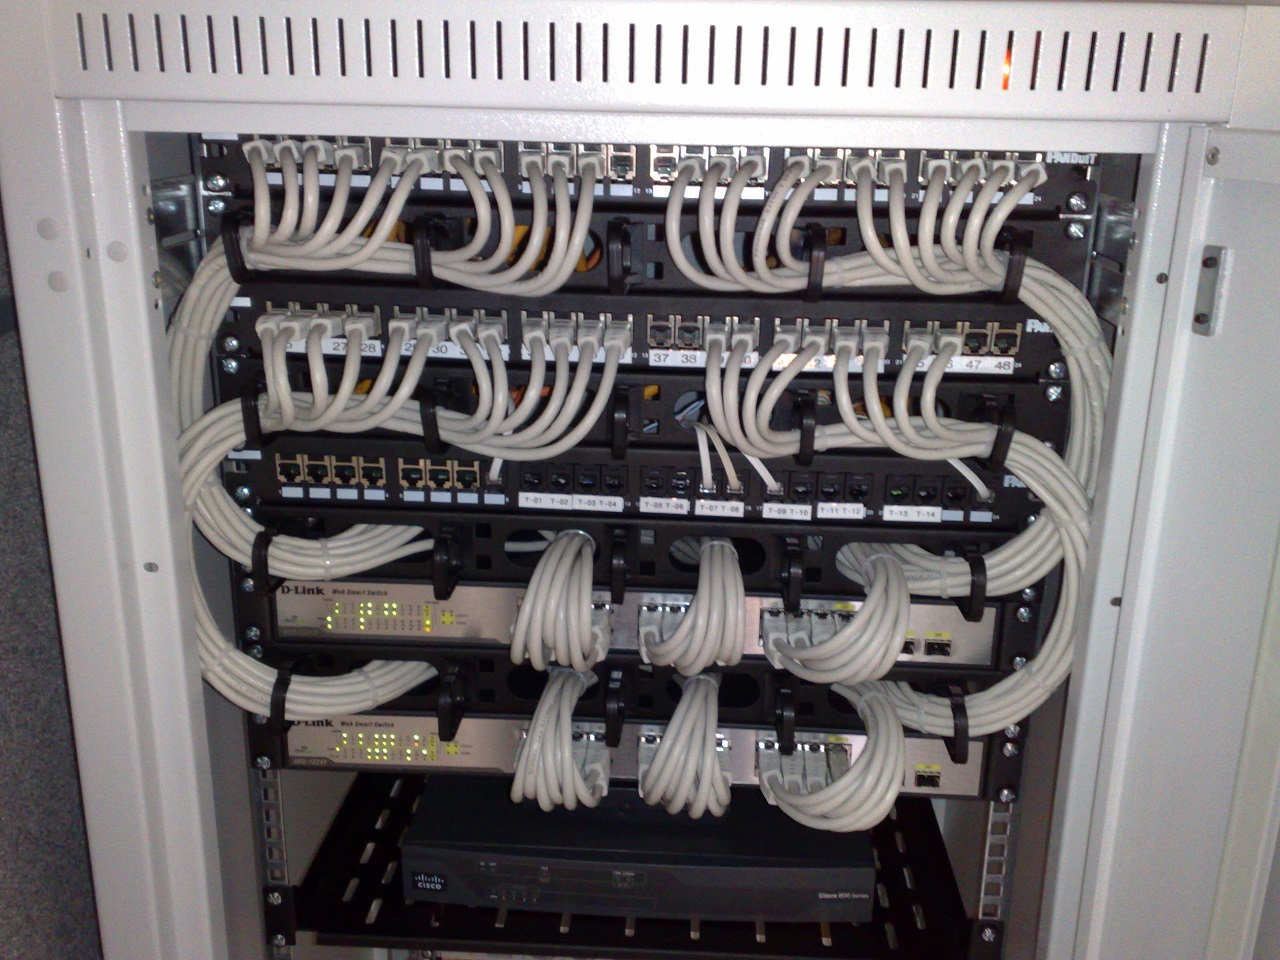 Patch Cable Wikipedia Wiring Ethernet Wall Jacks Moreover Ether Jack Diagram A Couple Of Managed Gigabit Rackmount Switches Connected To The Ports On Few Panels Using Category 6 Cables All Equipment